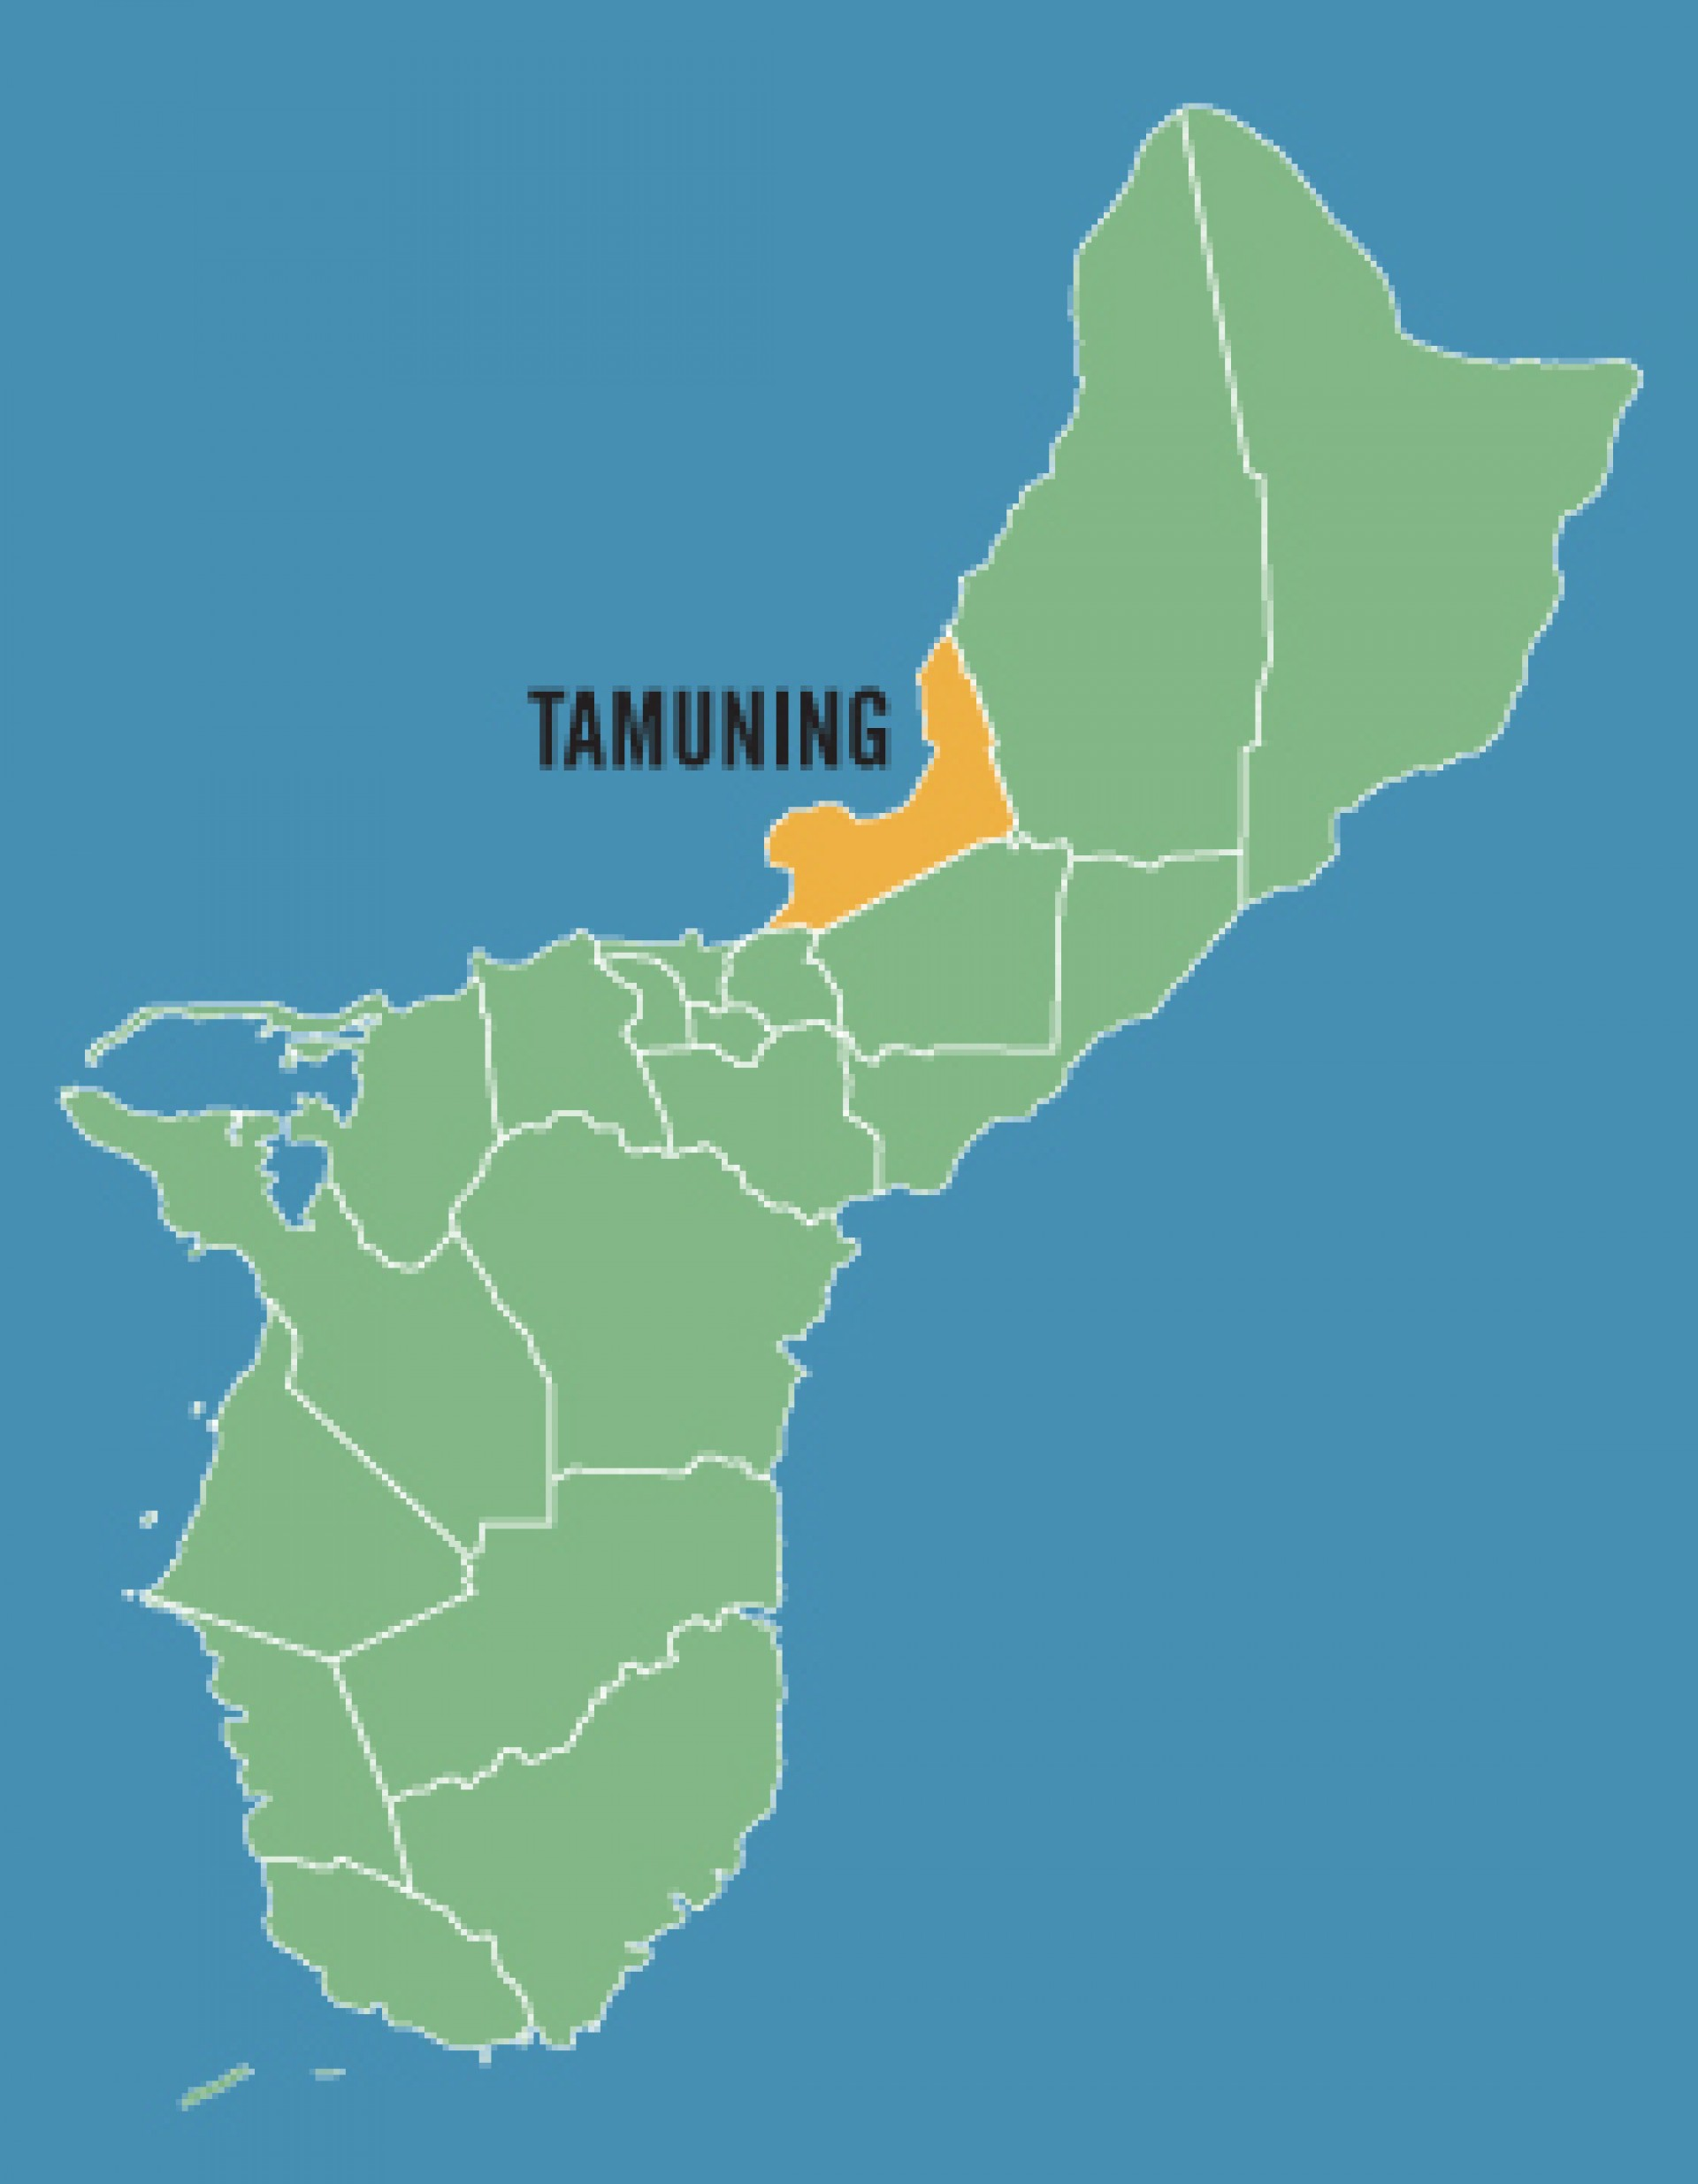 Villages find a home guam real estate houses condos for sale tamuning is located along guams western shore the village is considered to be an economic center of the island tamuning is also home to the antonio b gumiabroncs Choice Image